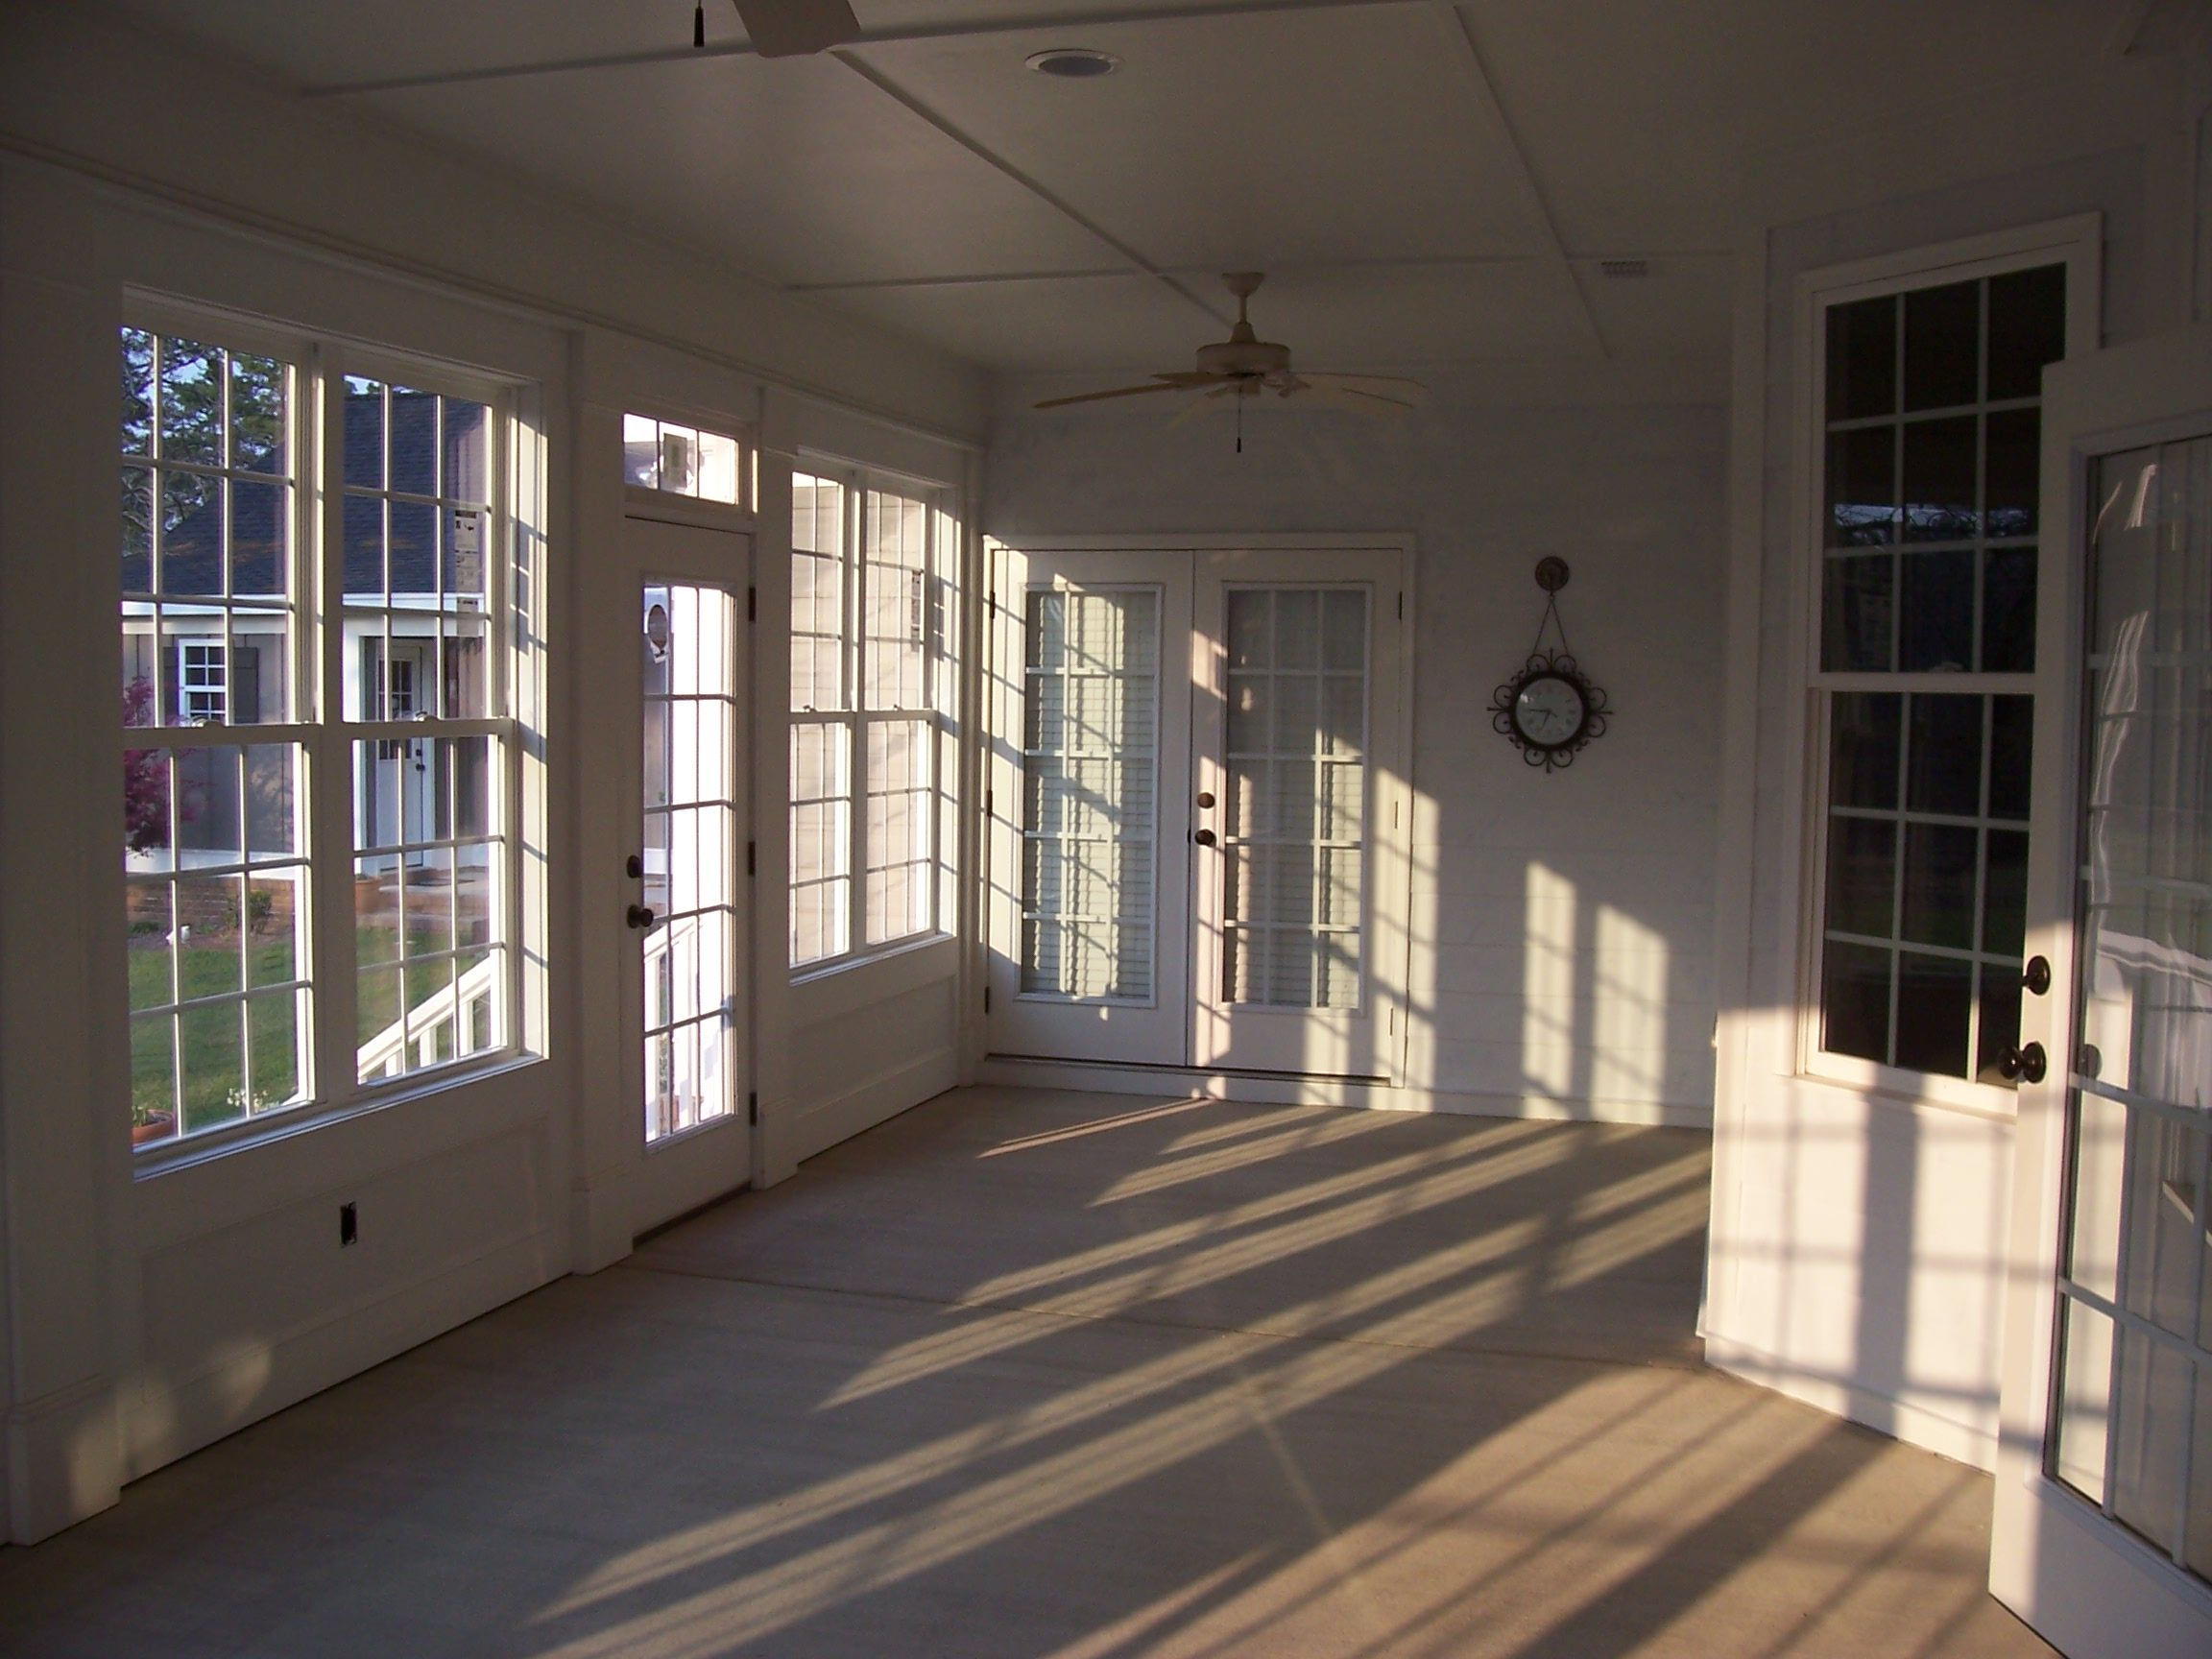 Remodel Project   Screen Porch Turned Into Sunroom/ Sun Porch Off Master  Bedroom. Wall